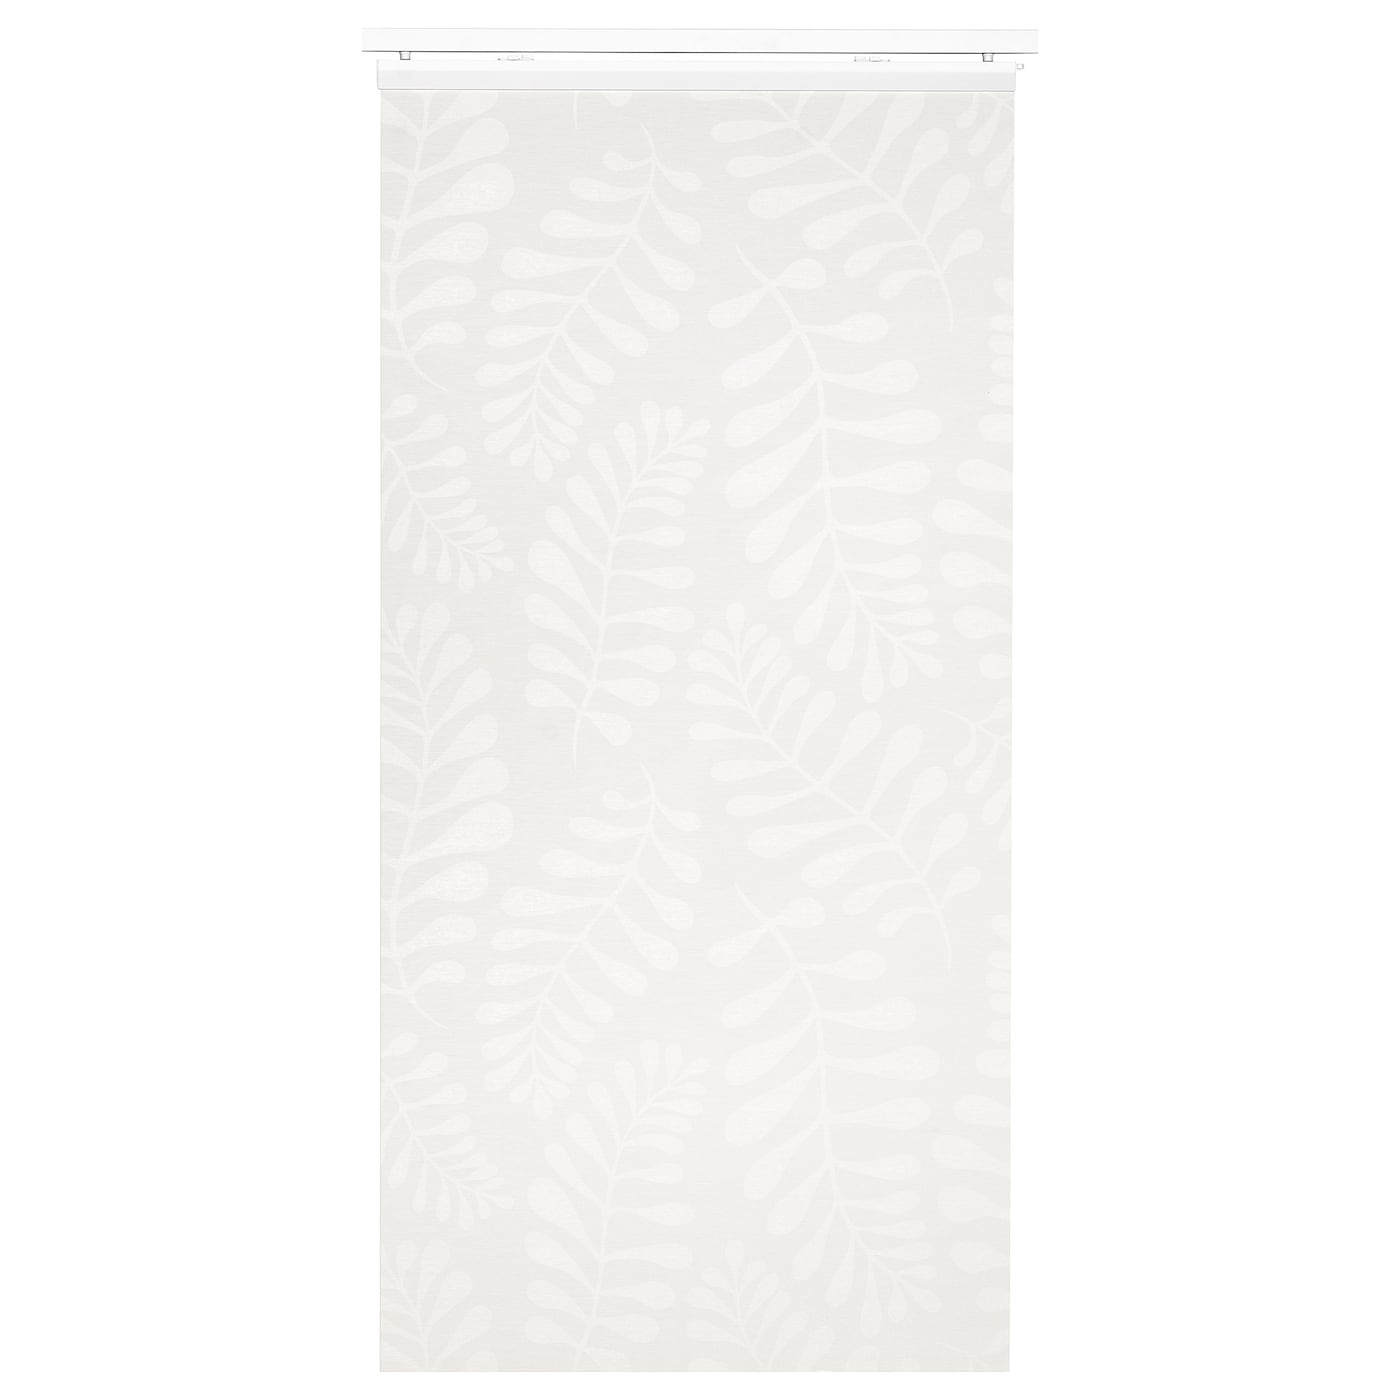 IKEA YRLA panel curtain You can cut the panel curtain to the desired length without hemming it.